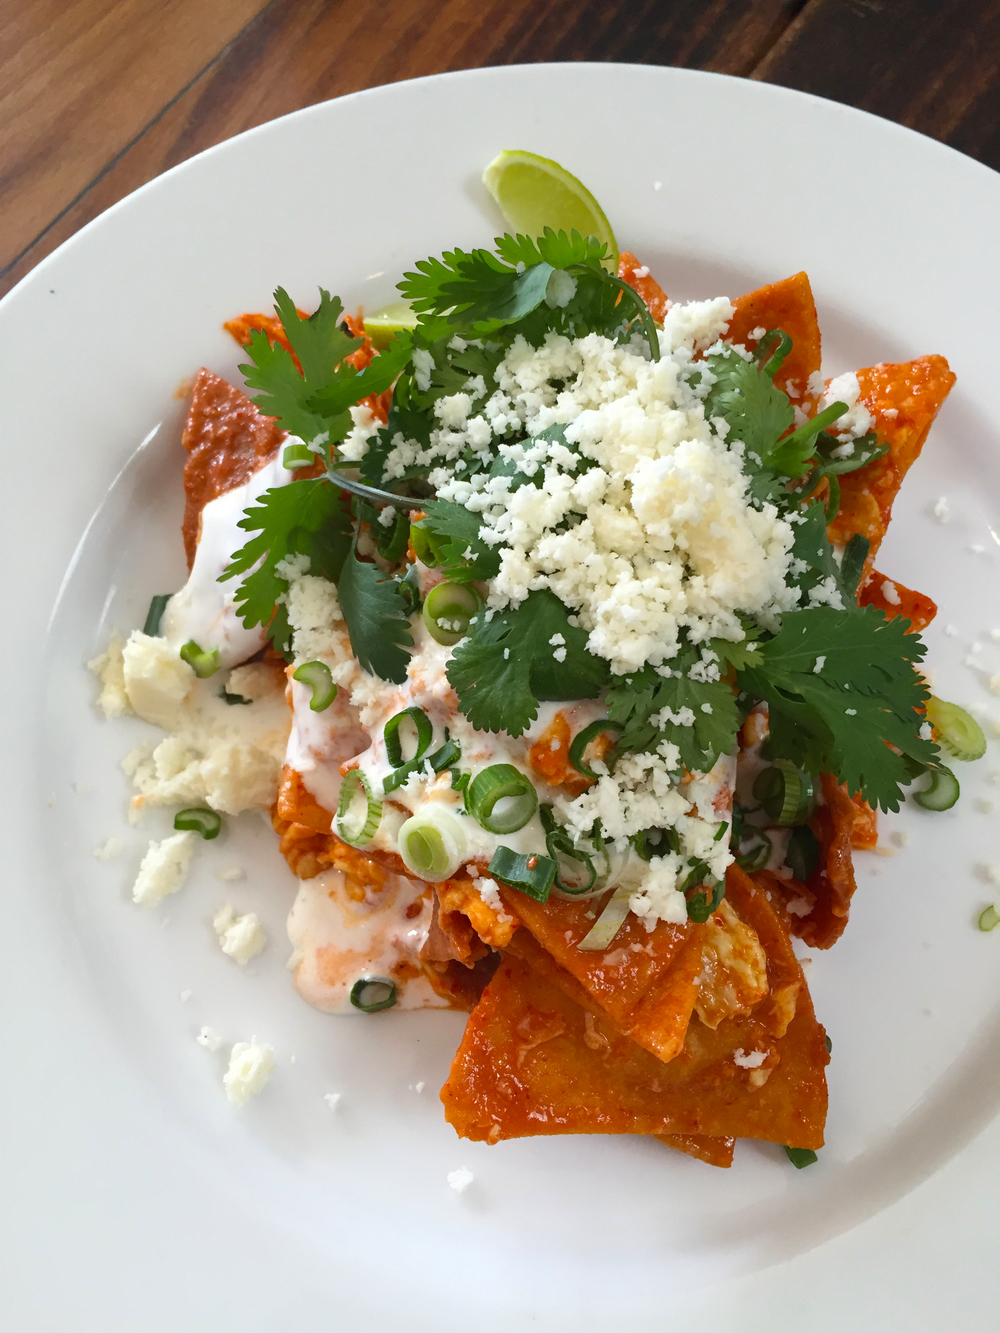 Raymundo's chilaquiles with Mexican sour cream, cilantro, scallion, and cotija.